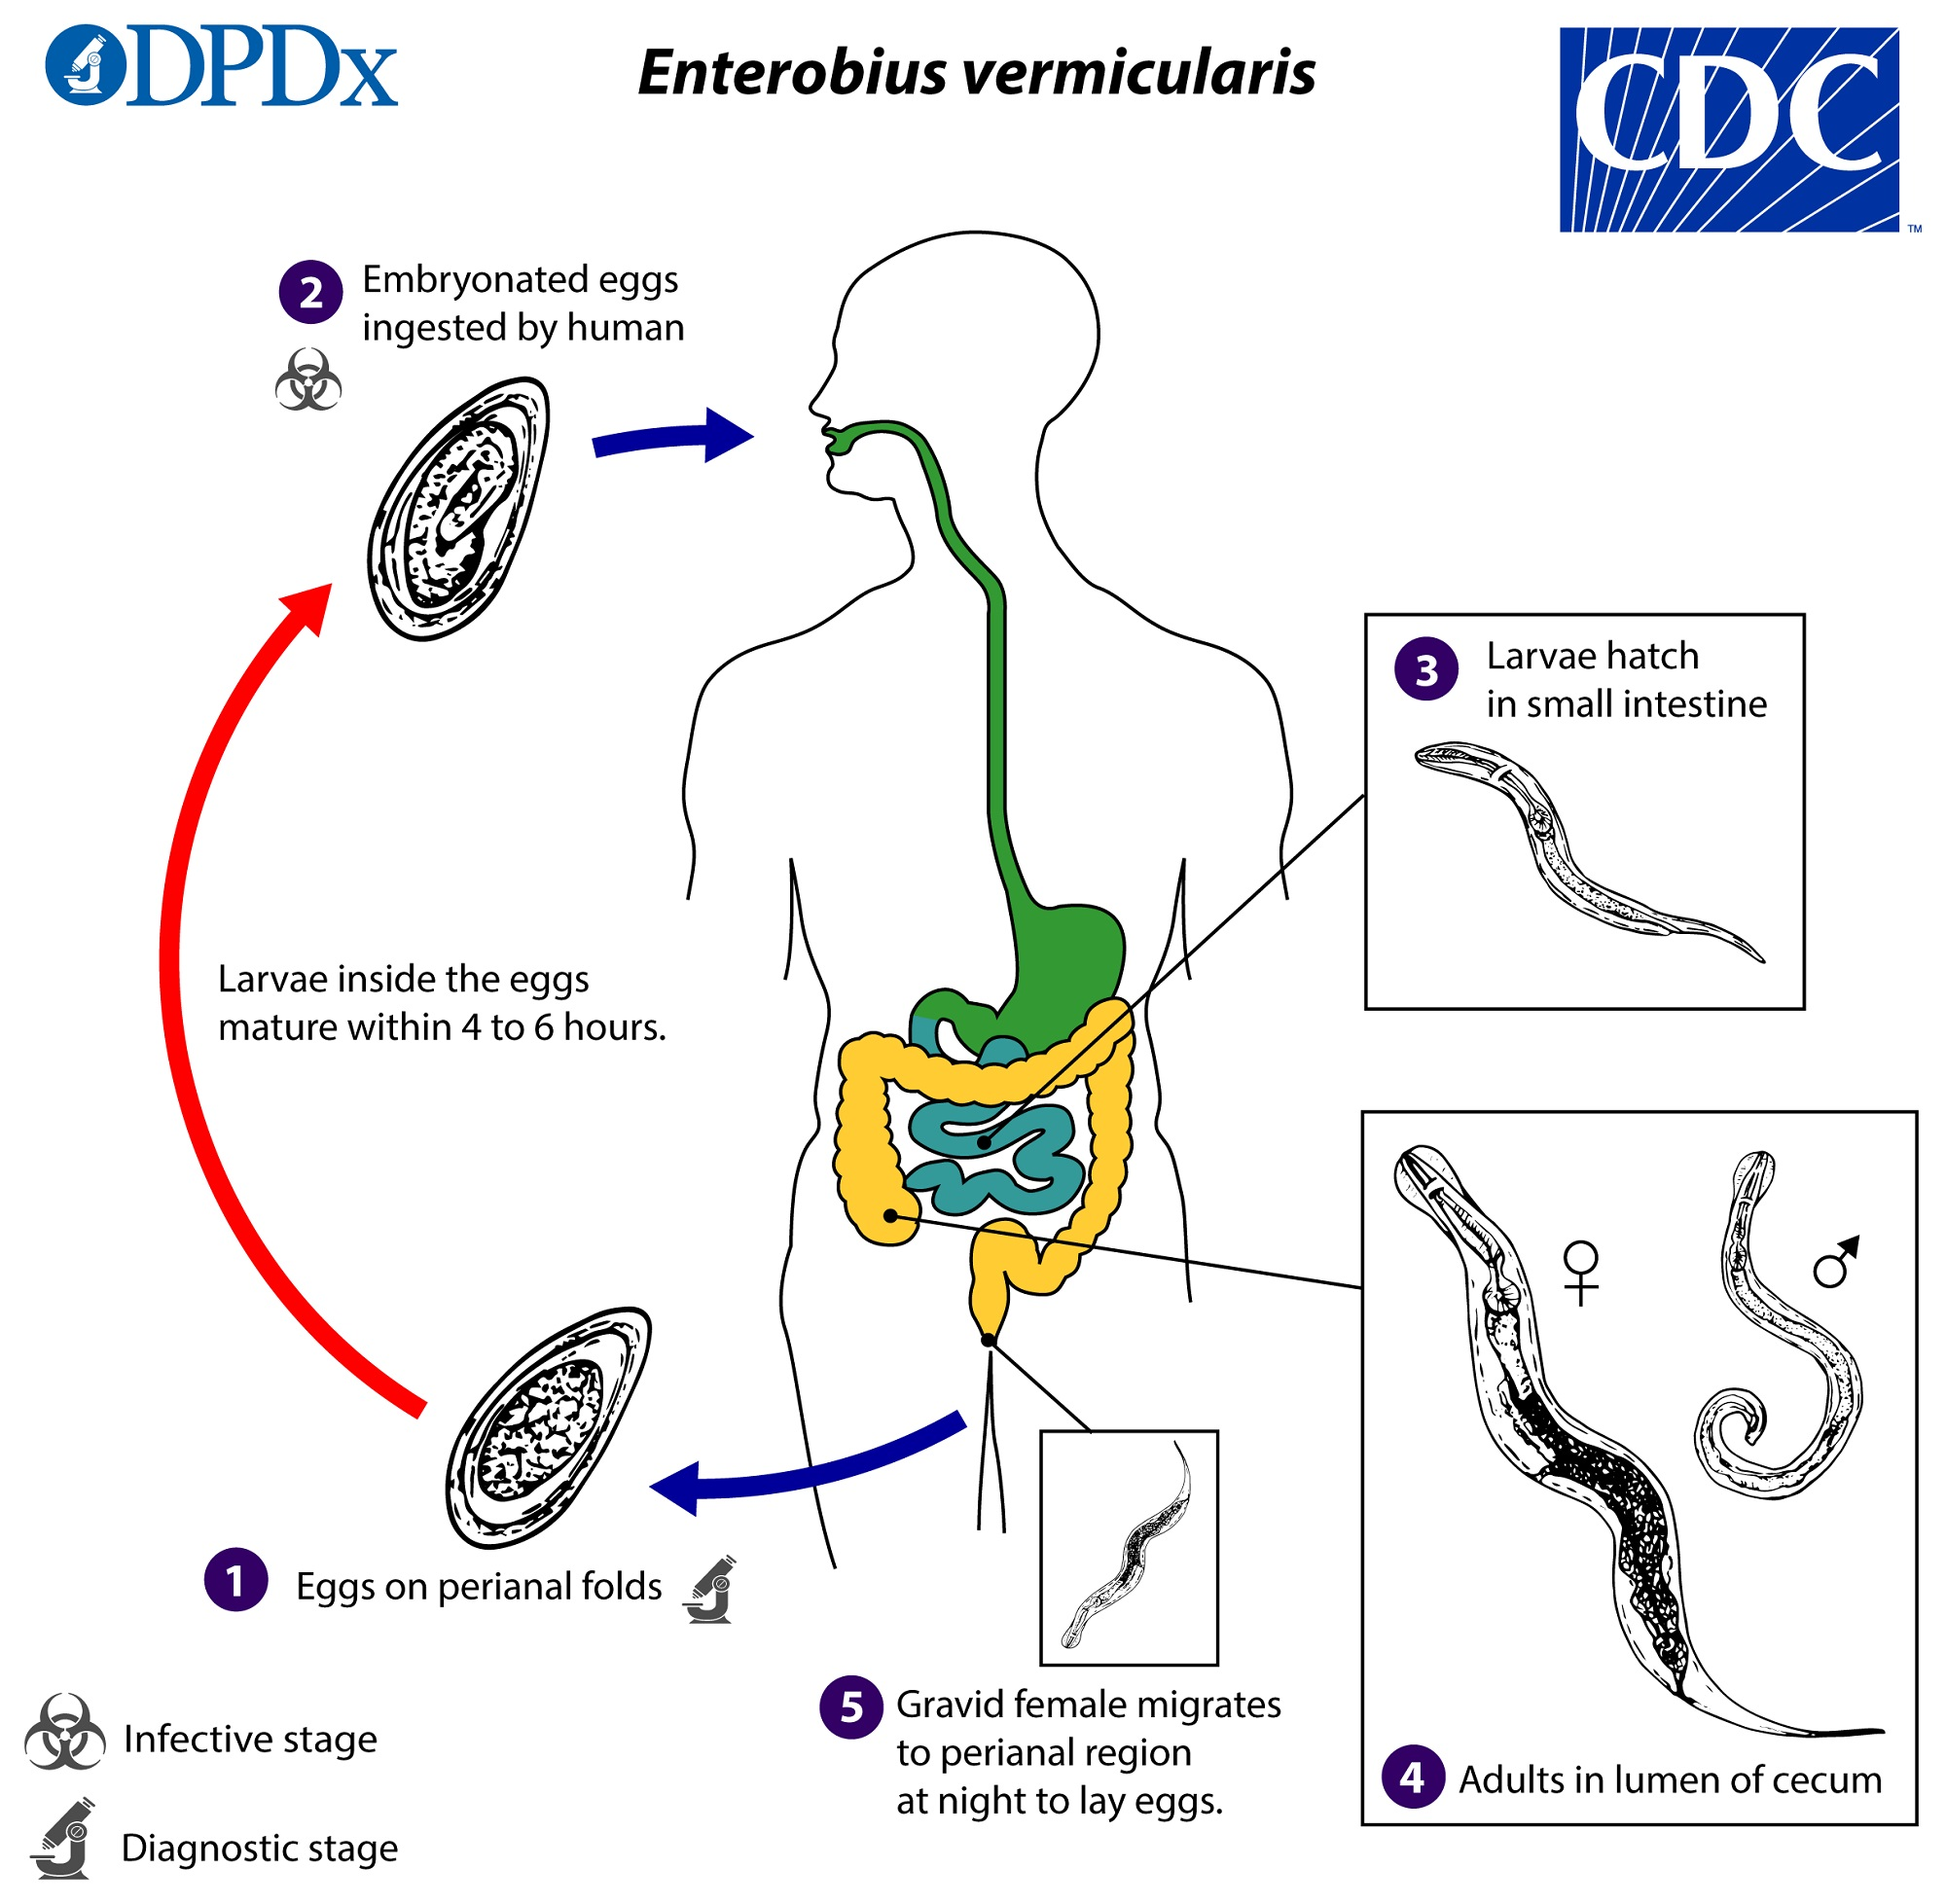 enterobius vermicularis virulence factors hpv herpes cancer